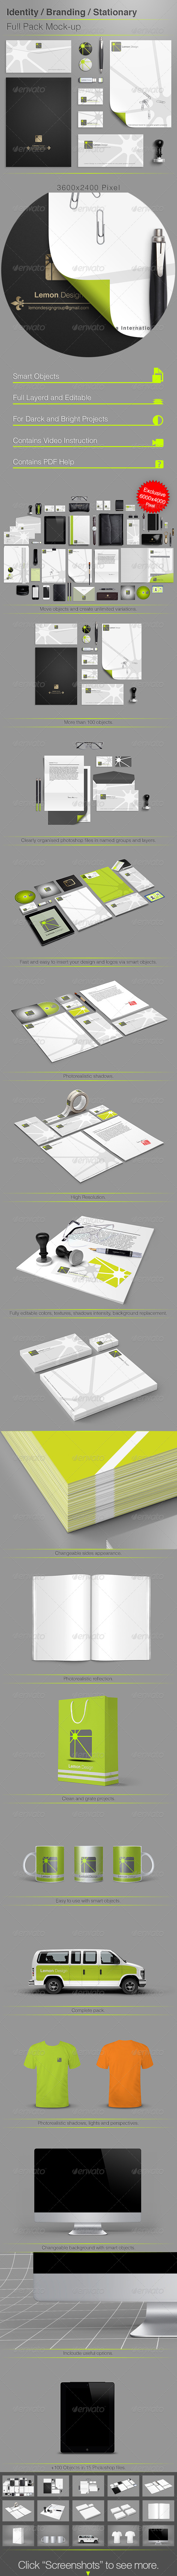 GraphicRiver Identity Branding Stationery Full Pack Mock-up 4946652